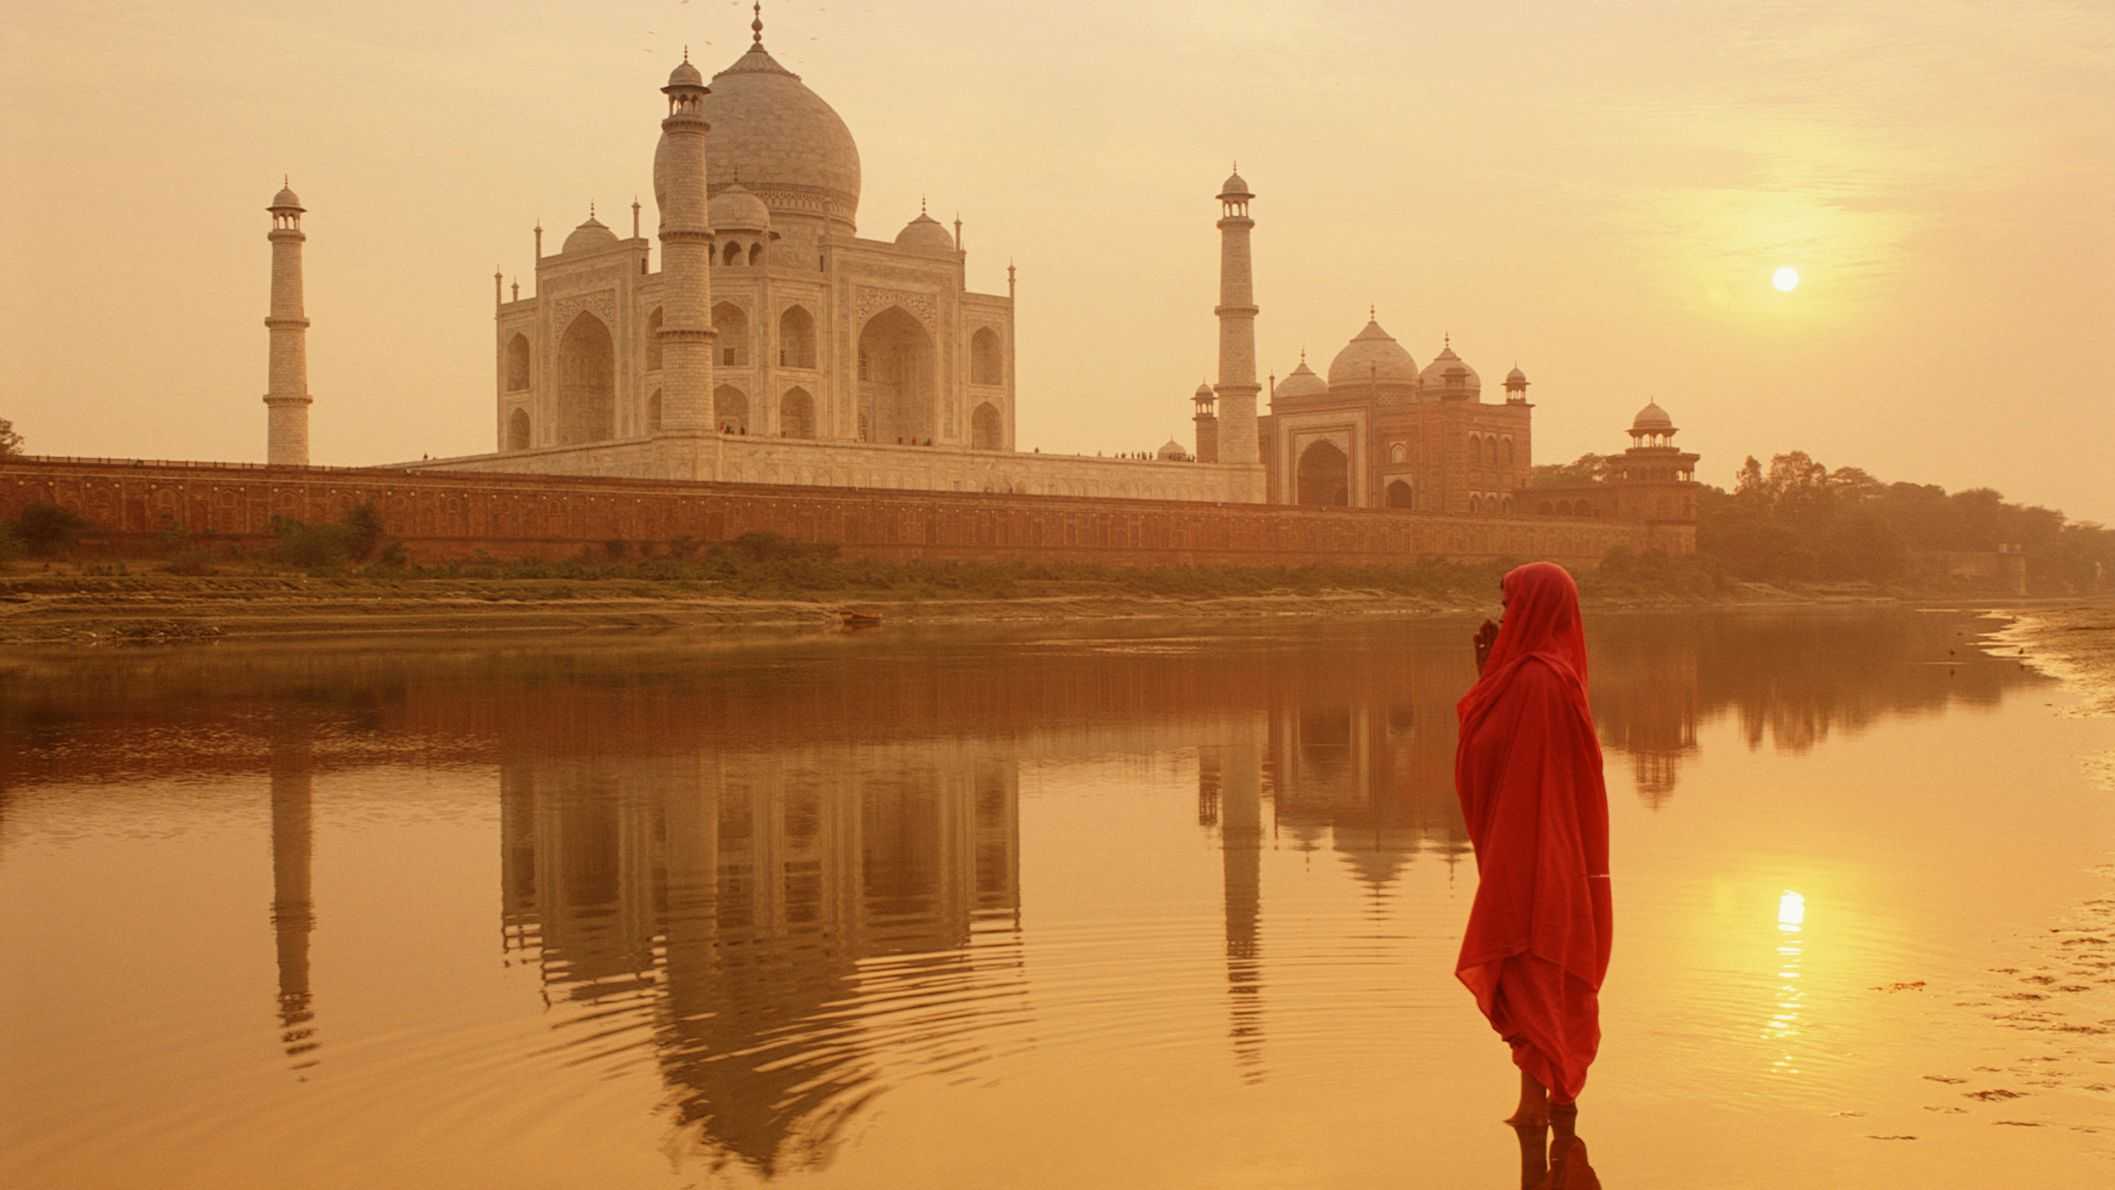 The Taj Mahal in India: What to Know Before You Go